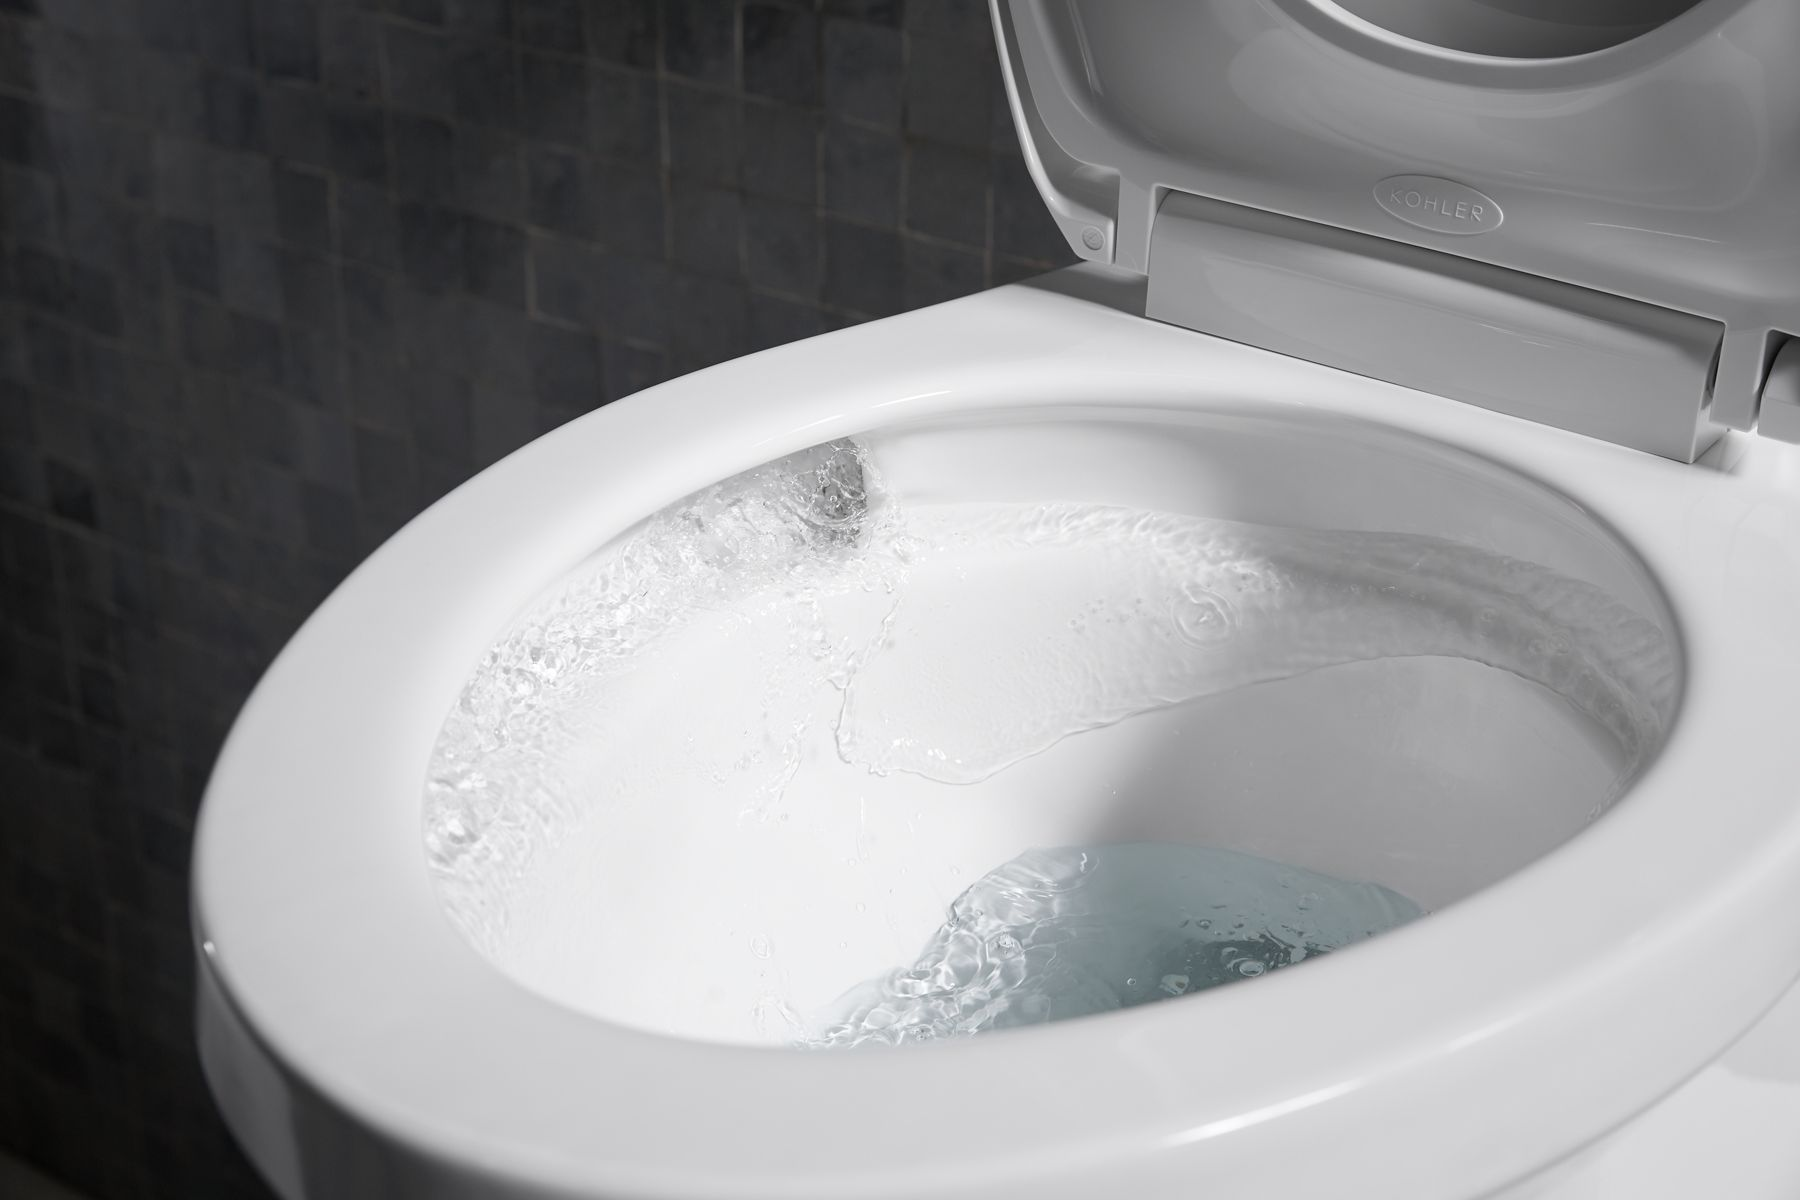 Self Cleaning Toilet Technology | ContinuousClean | Kohler.com